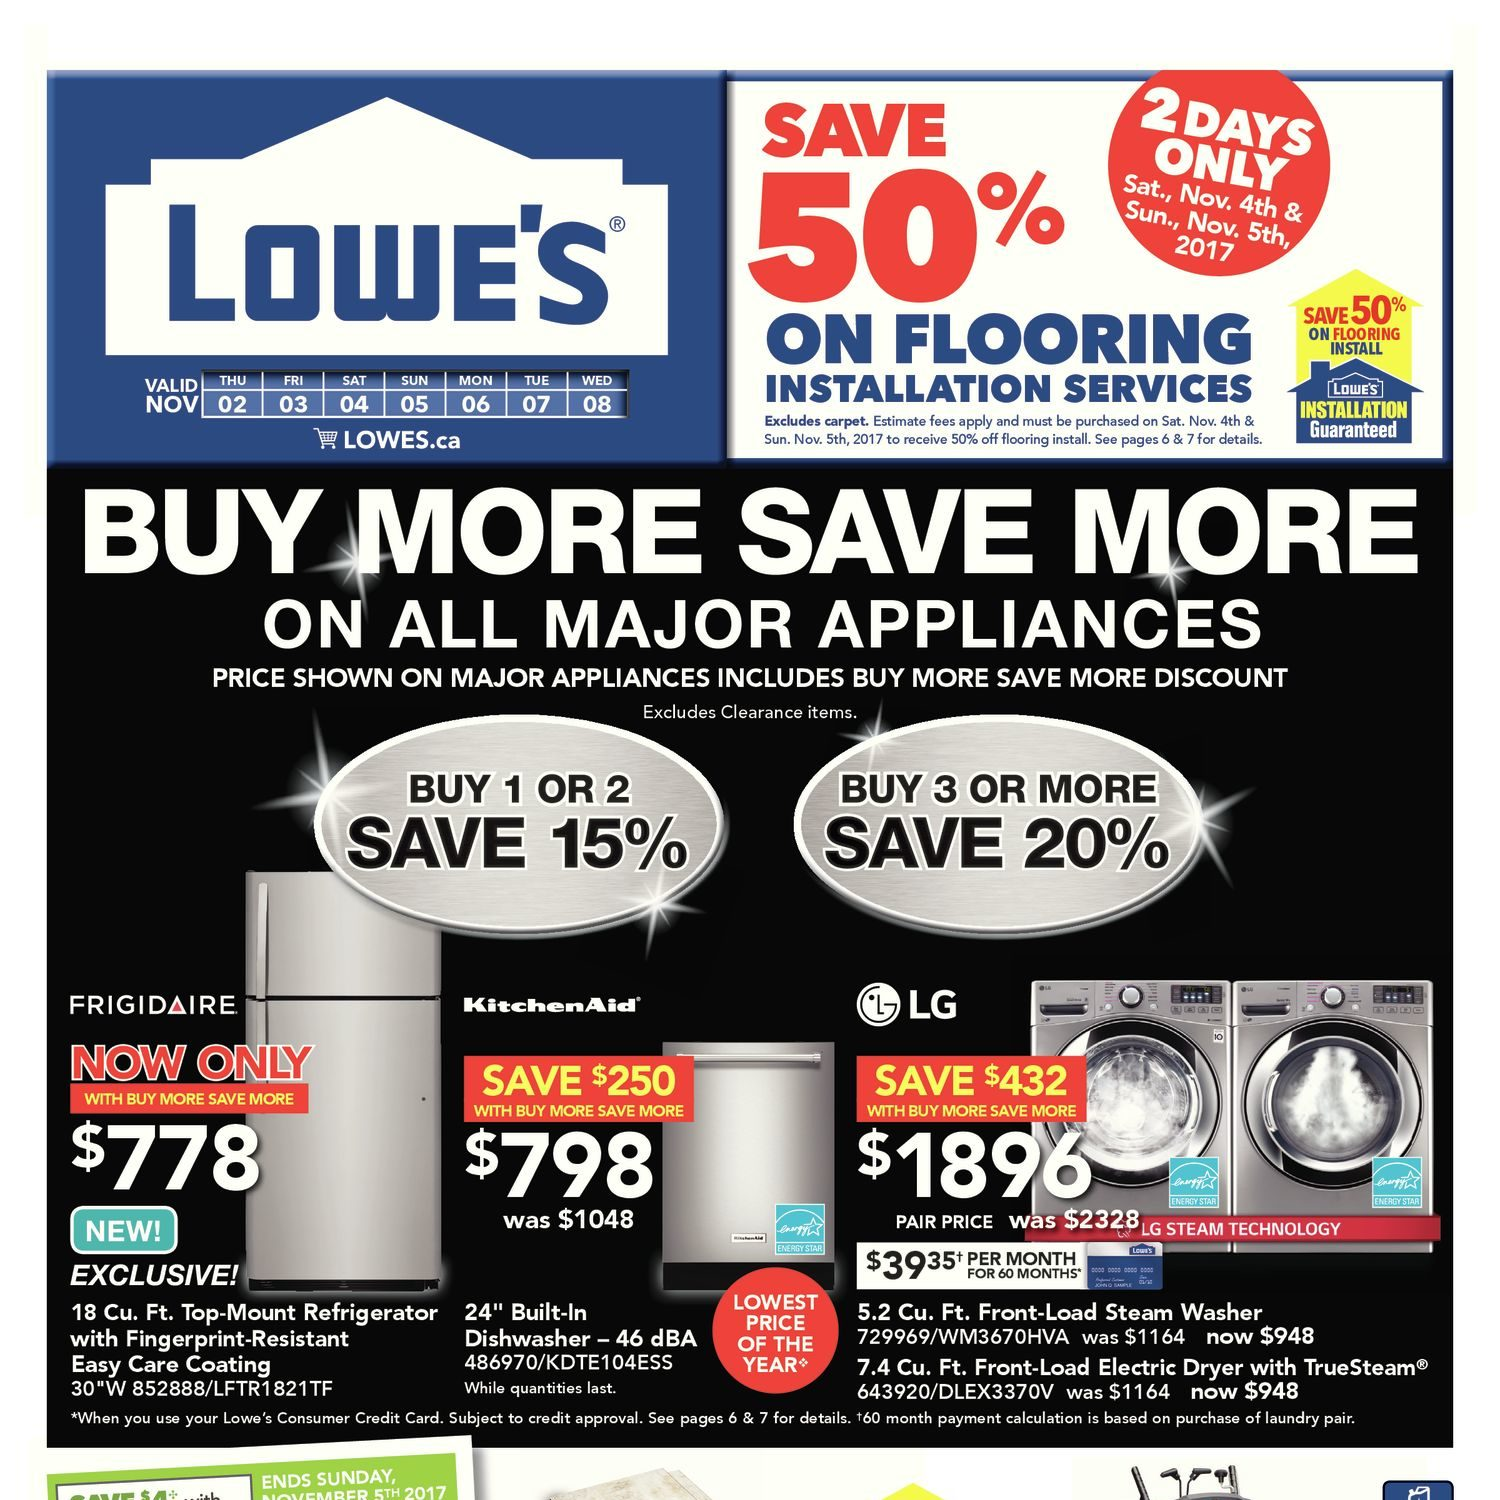 Lowes Weekly Flyer Buy More Save On All Major 5 8211 30 Minute Timer Appliances Nov 2 8